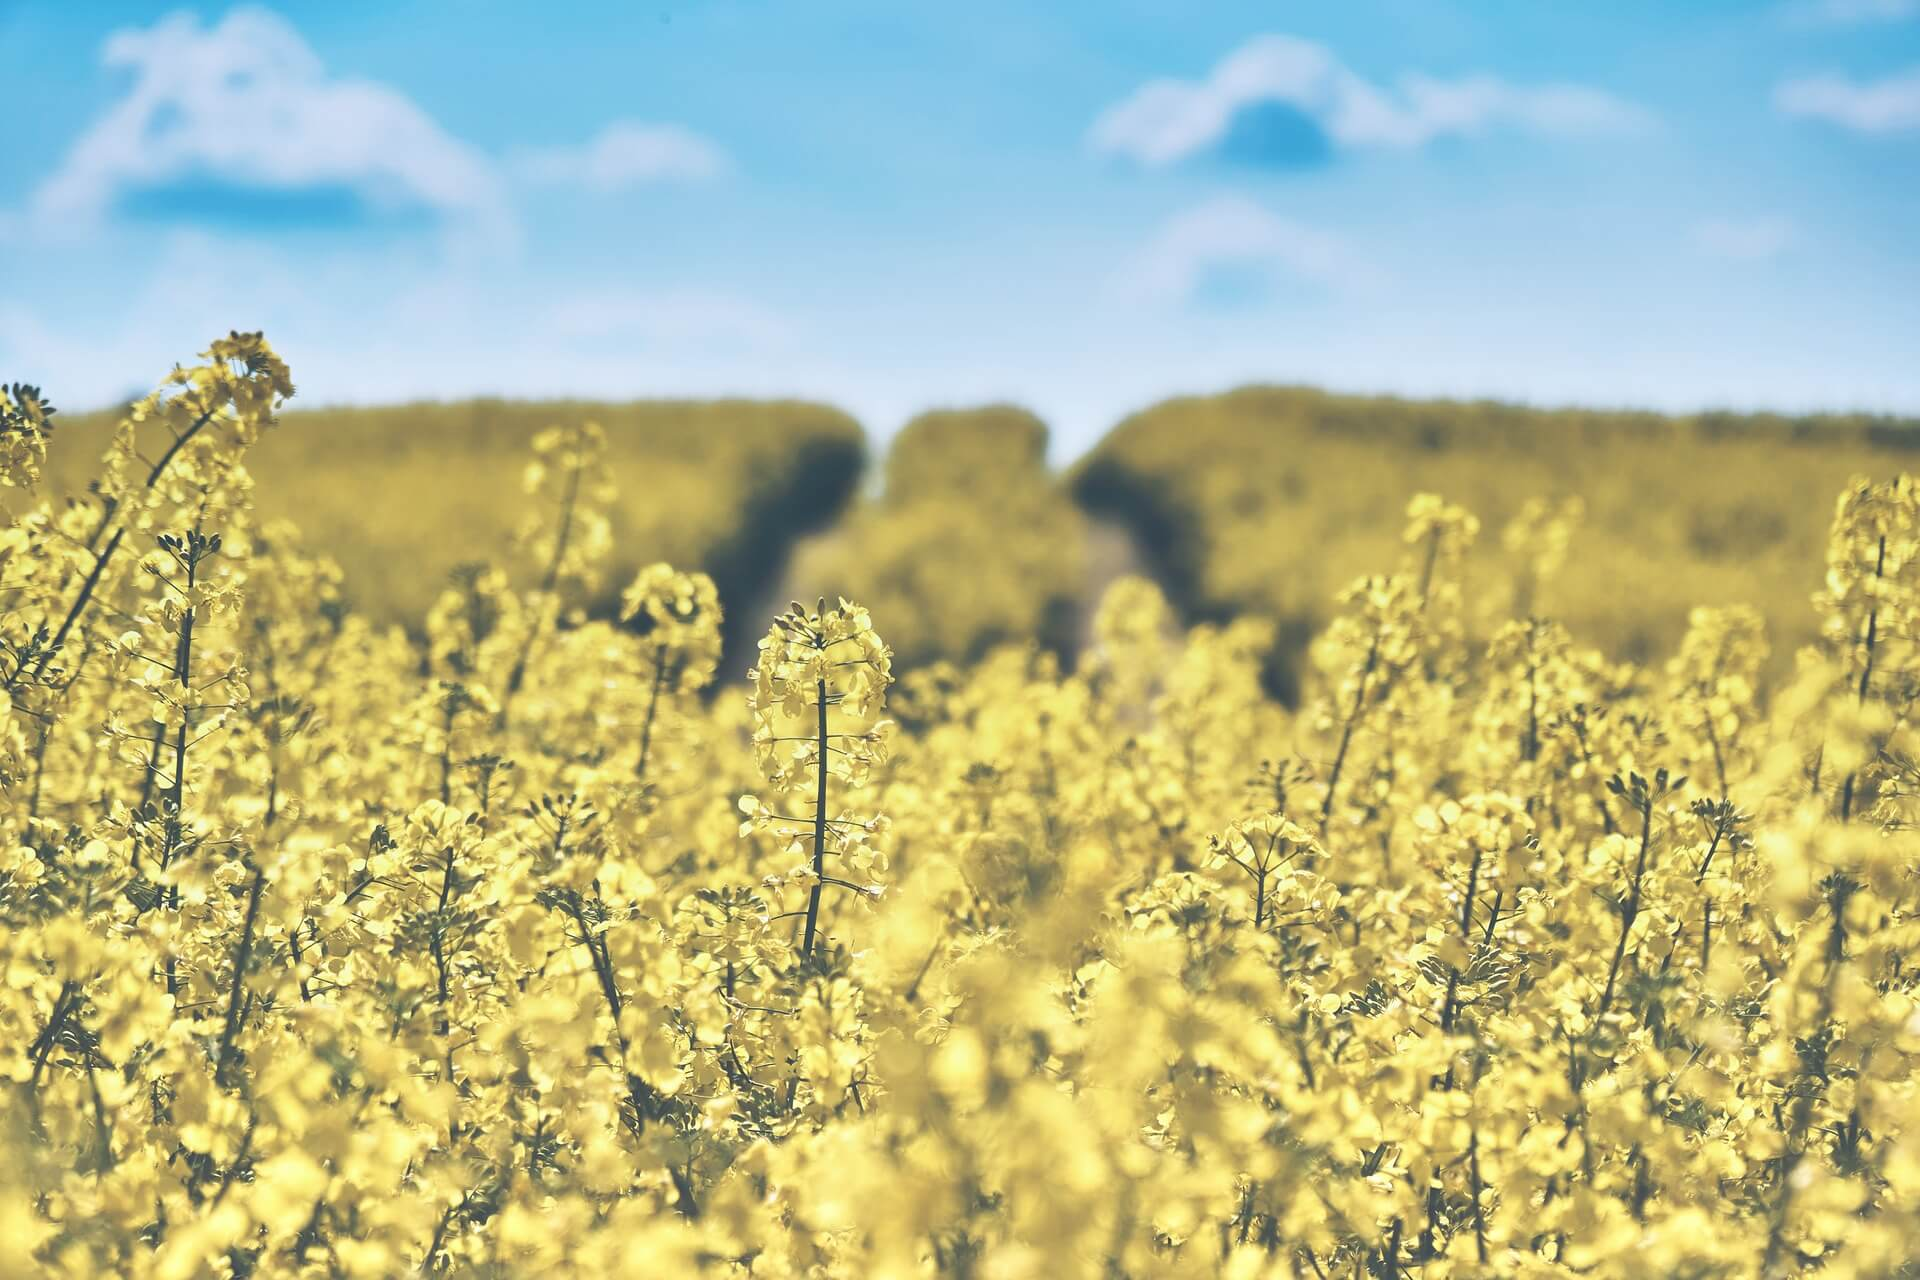 field-of-rapeseeds-1433380_1920.jpg